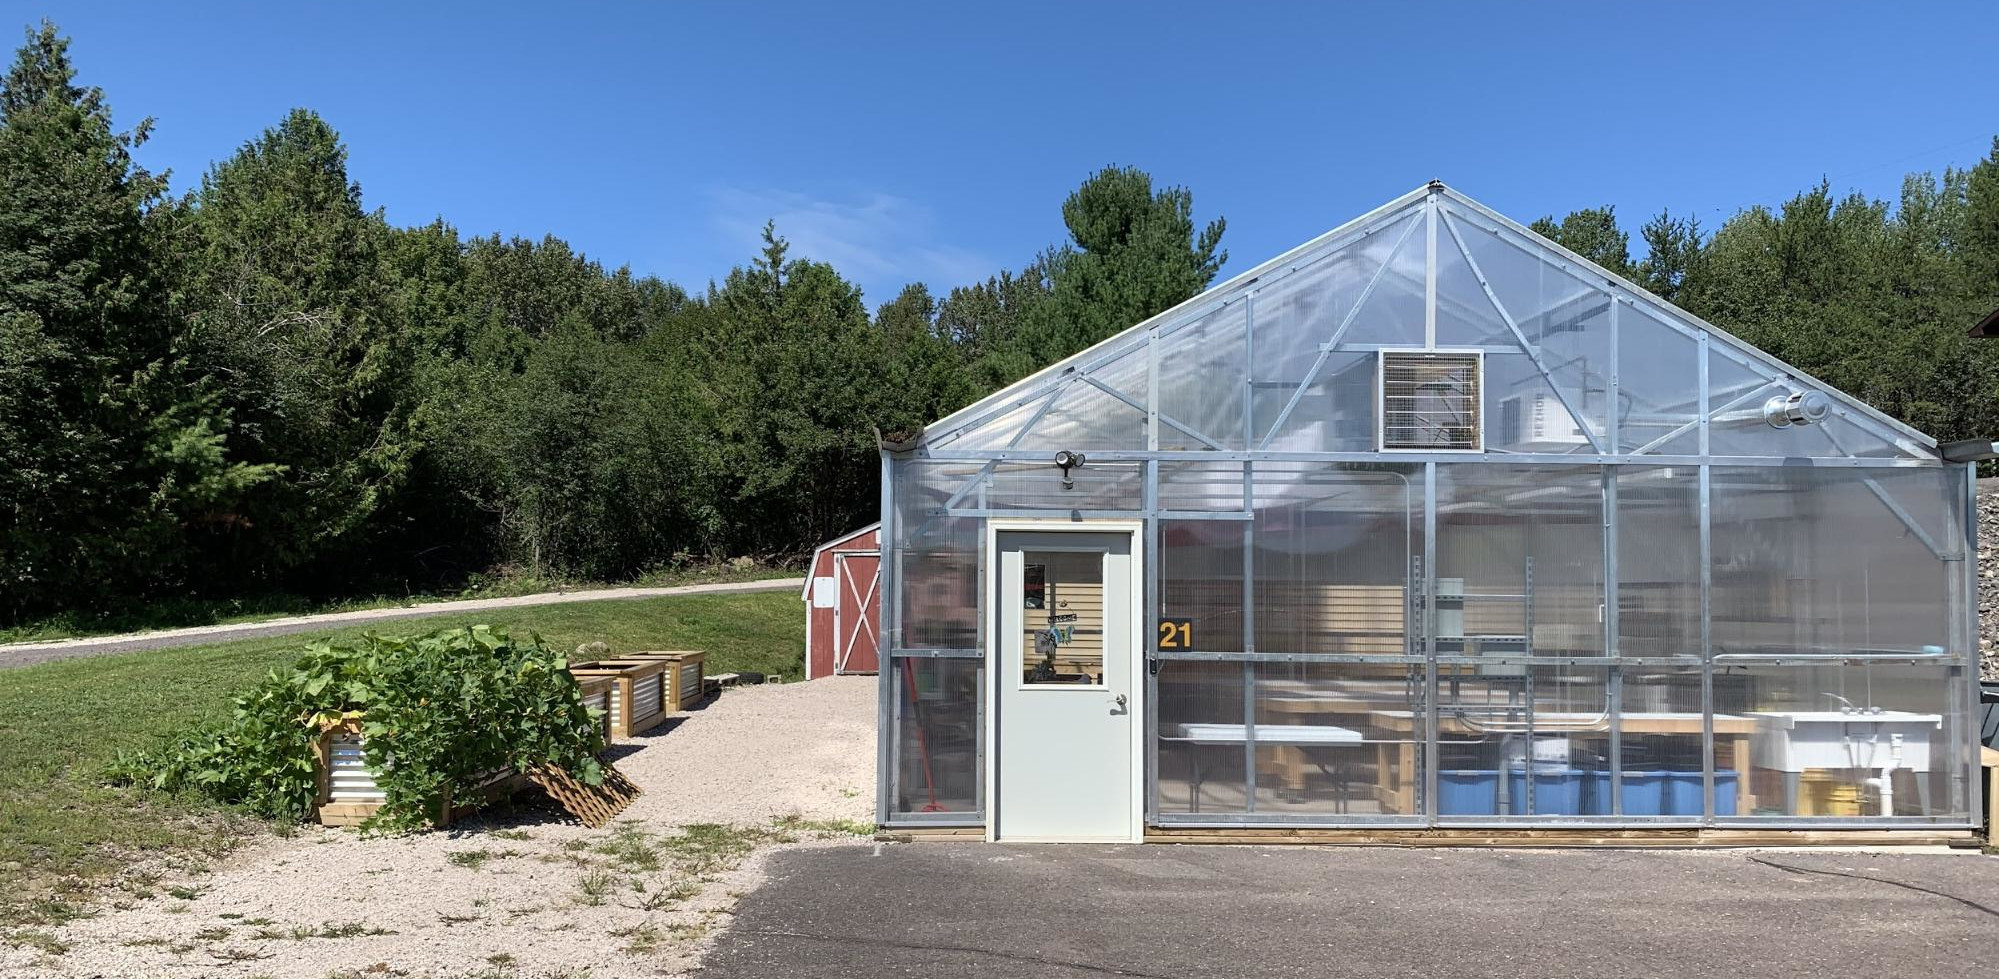 The CCISD greenhouse, located at the CCISD building in Hancock.